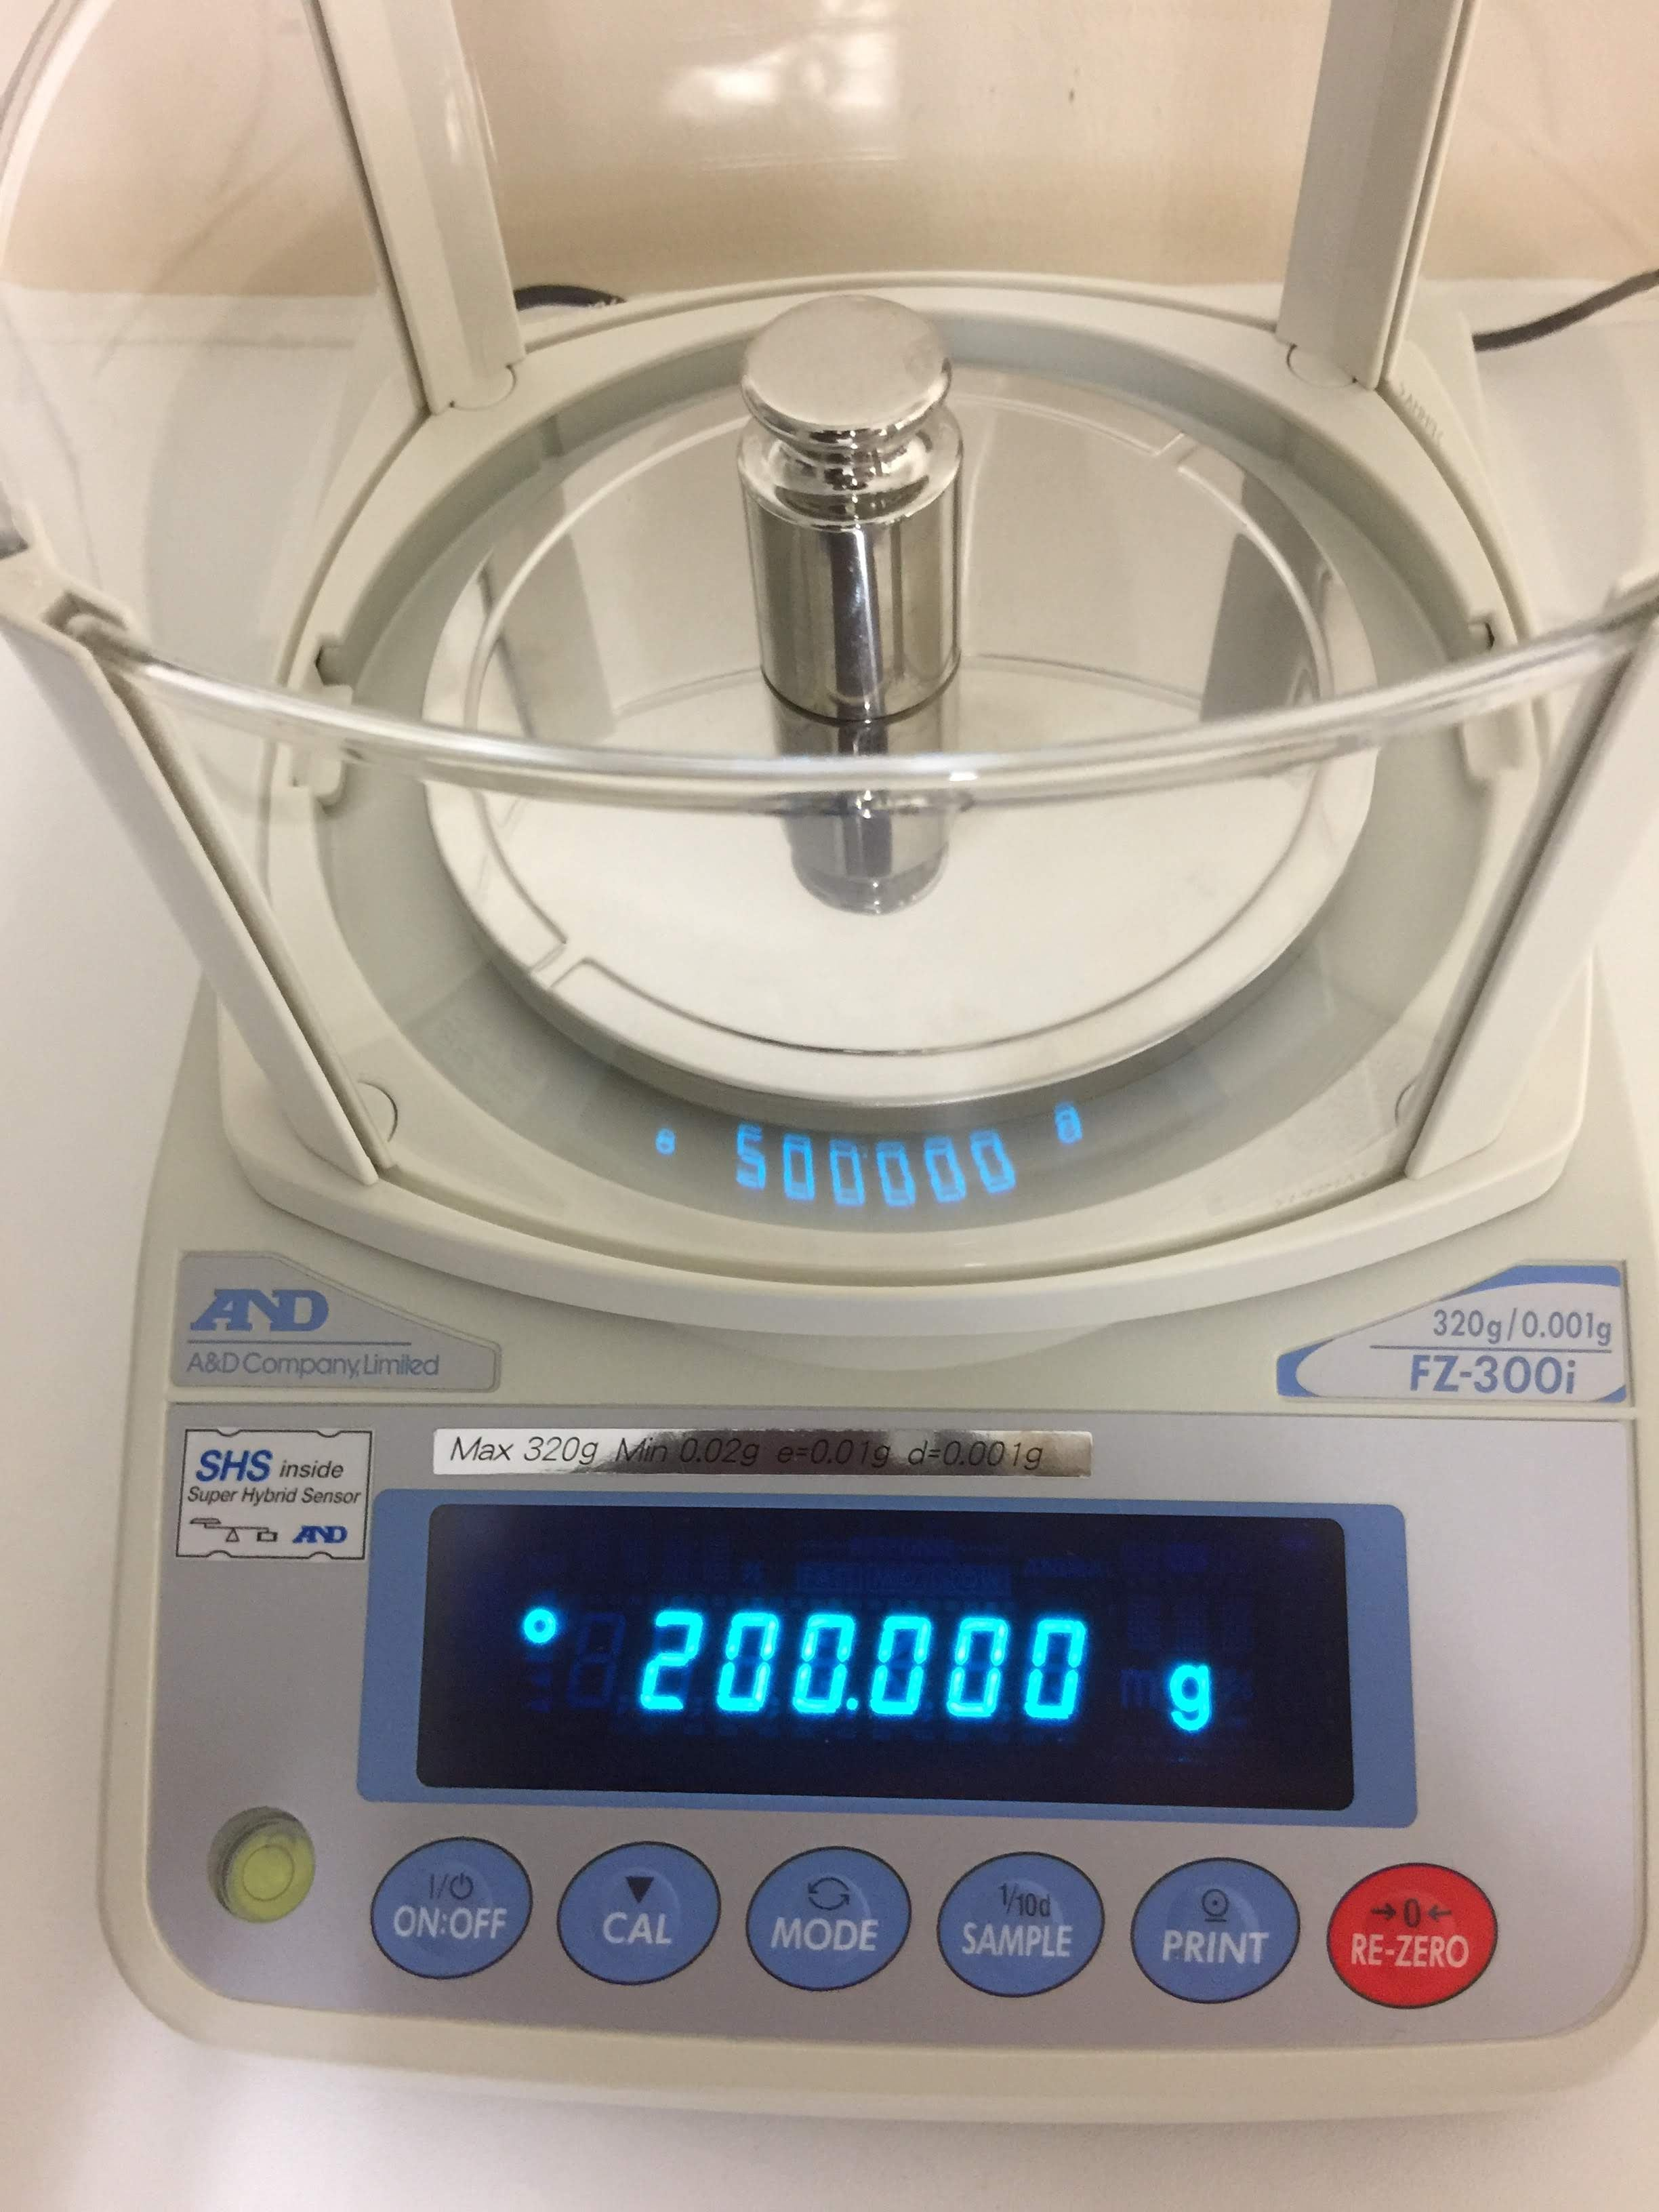 Weight placed on the balance, digital screen shows 200.000g in blue